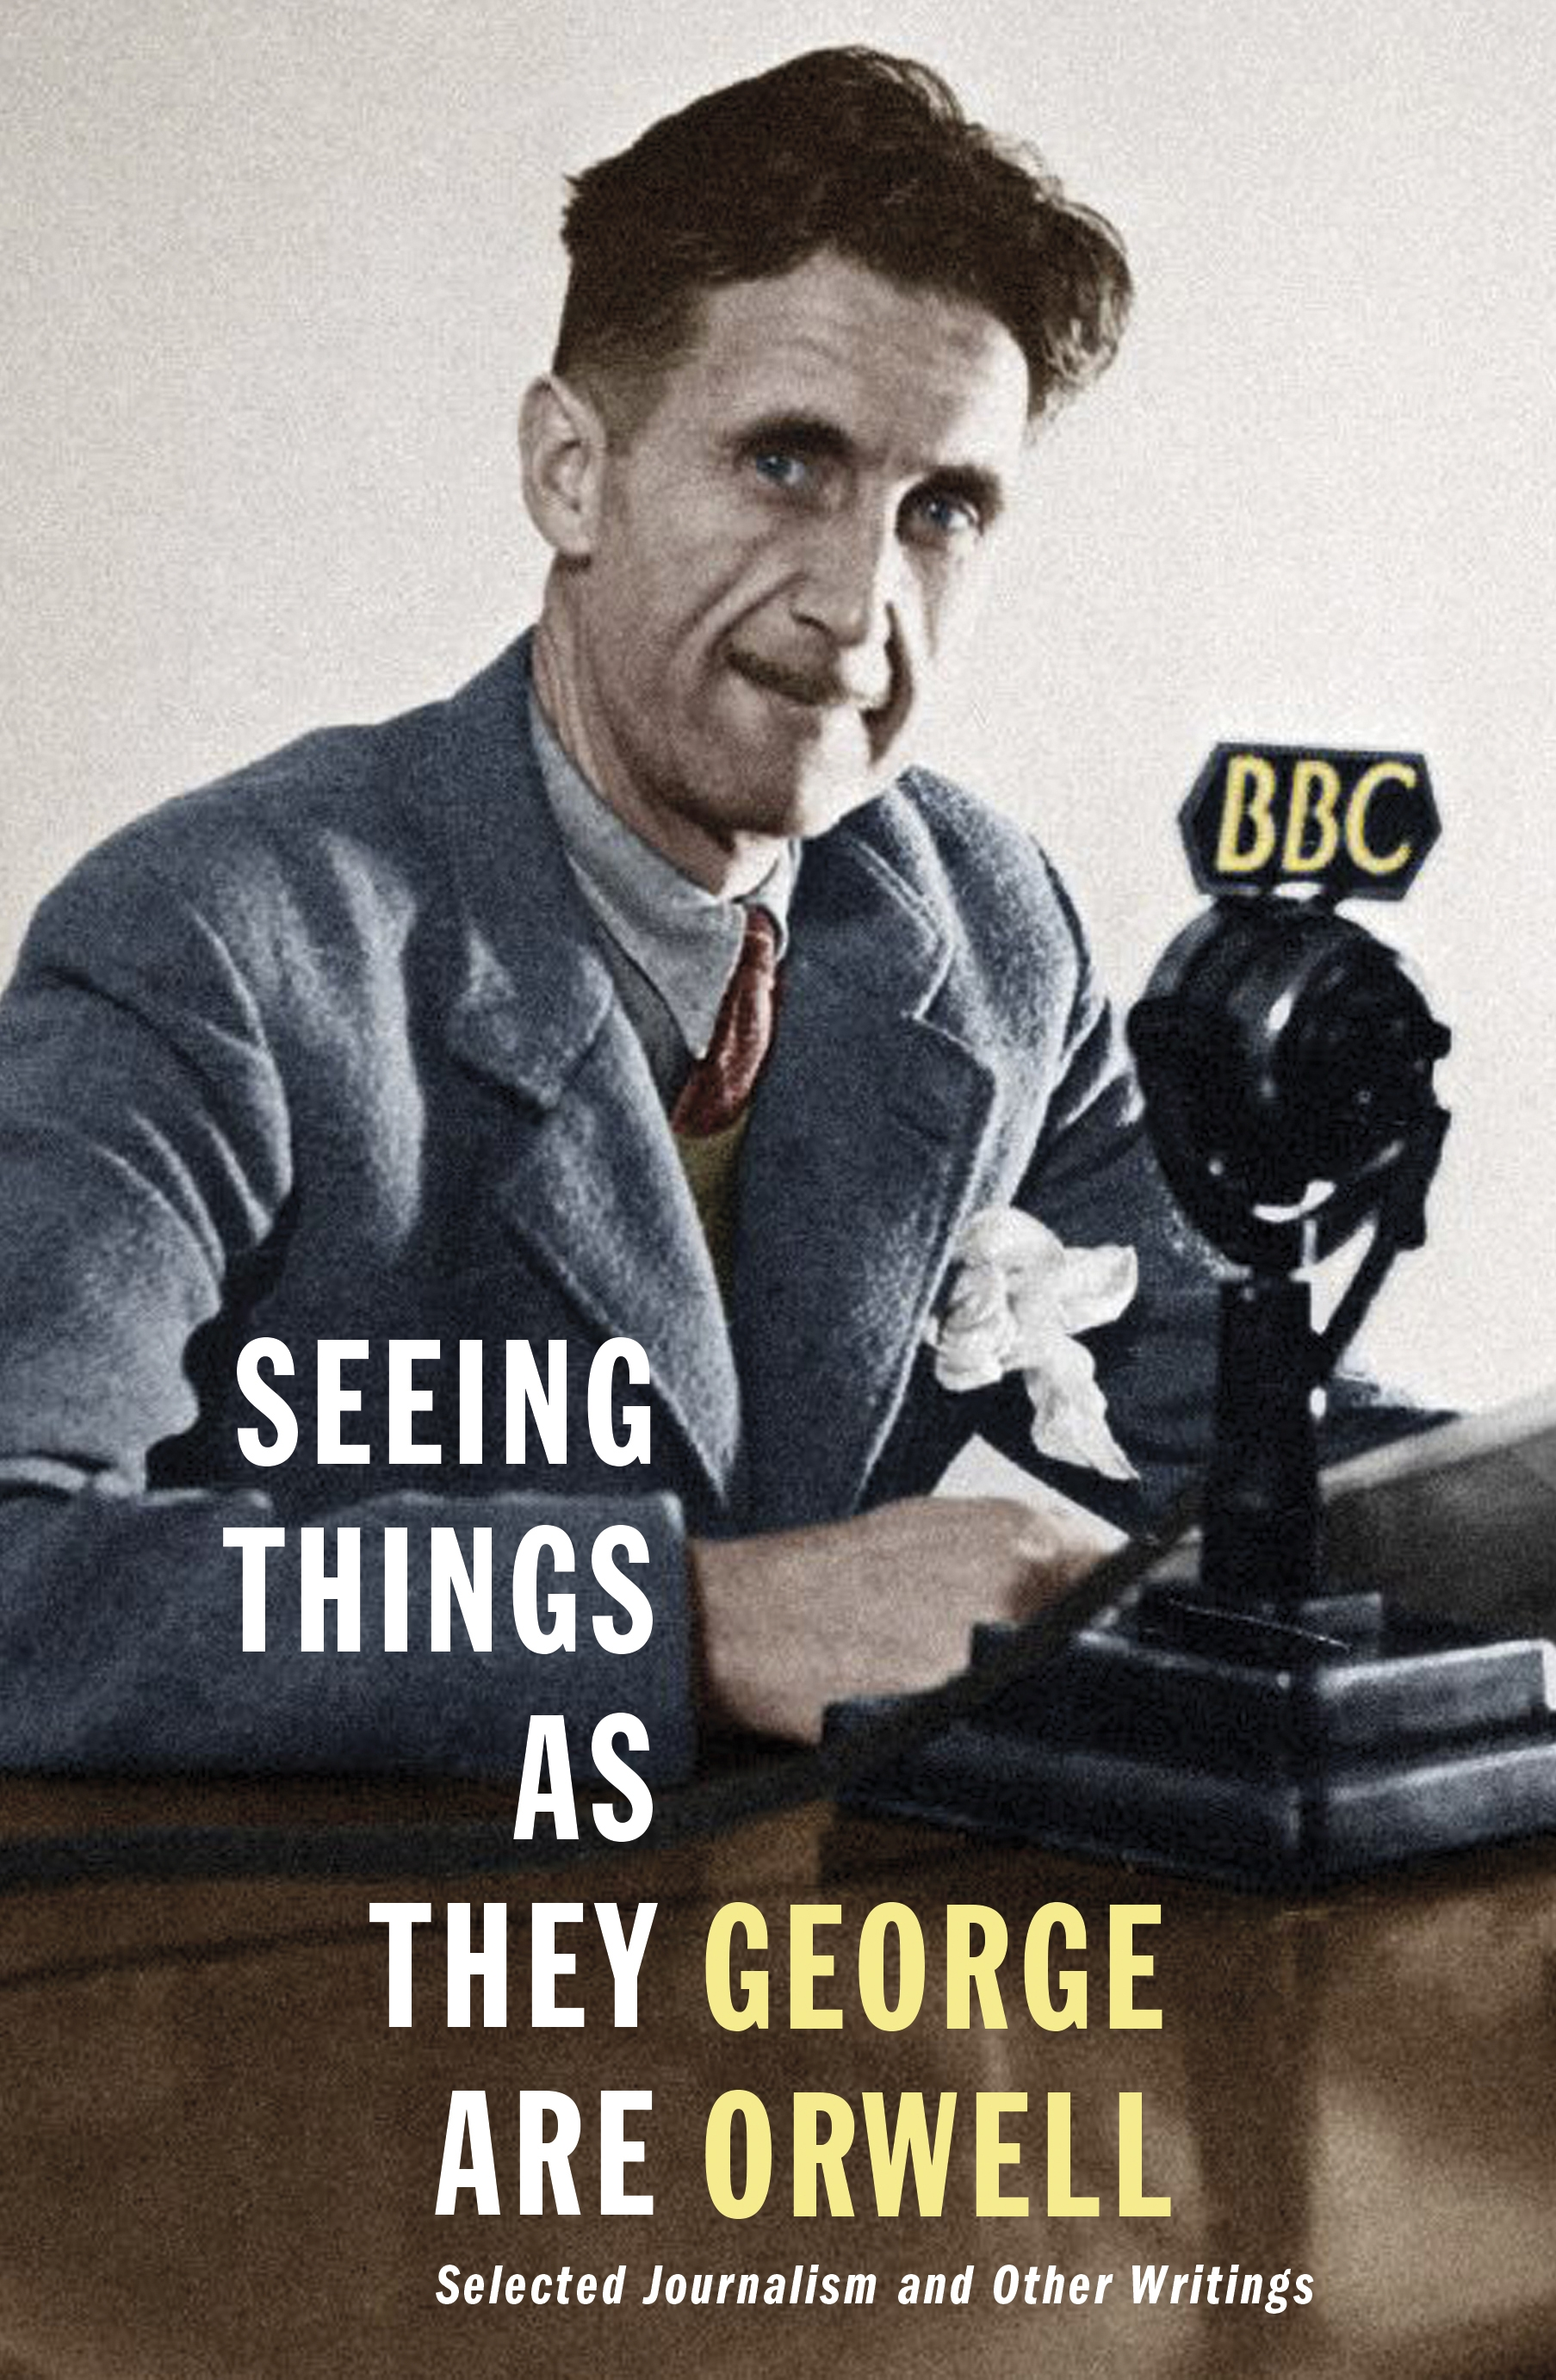 george orwell pleasure spots essay Essay of politics - get common advice  please george orwell's politics: an obligation to make a pragmatic and focused topic, london fighting politicians' war,.